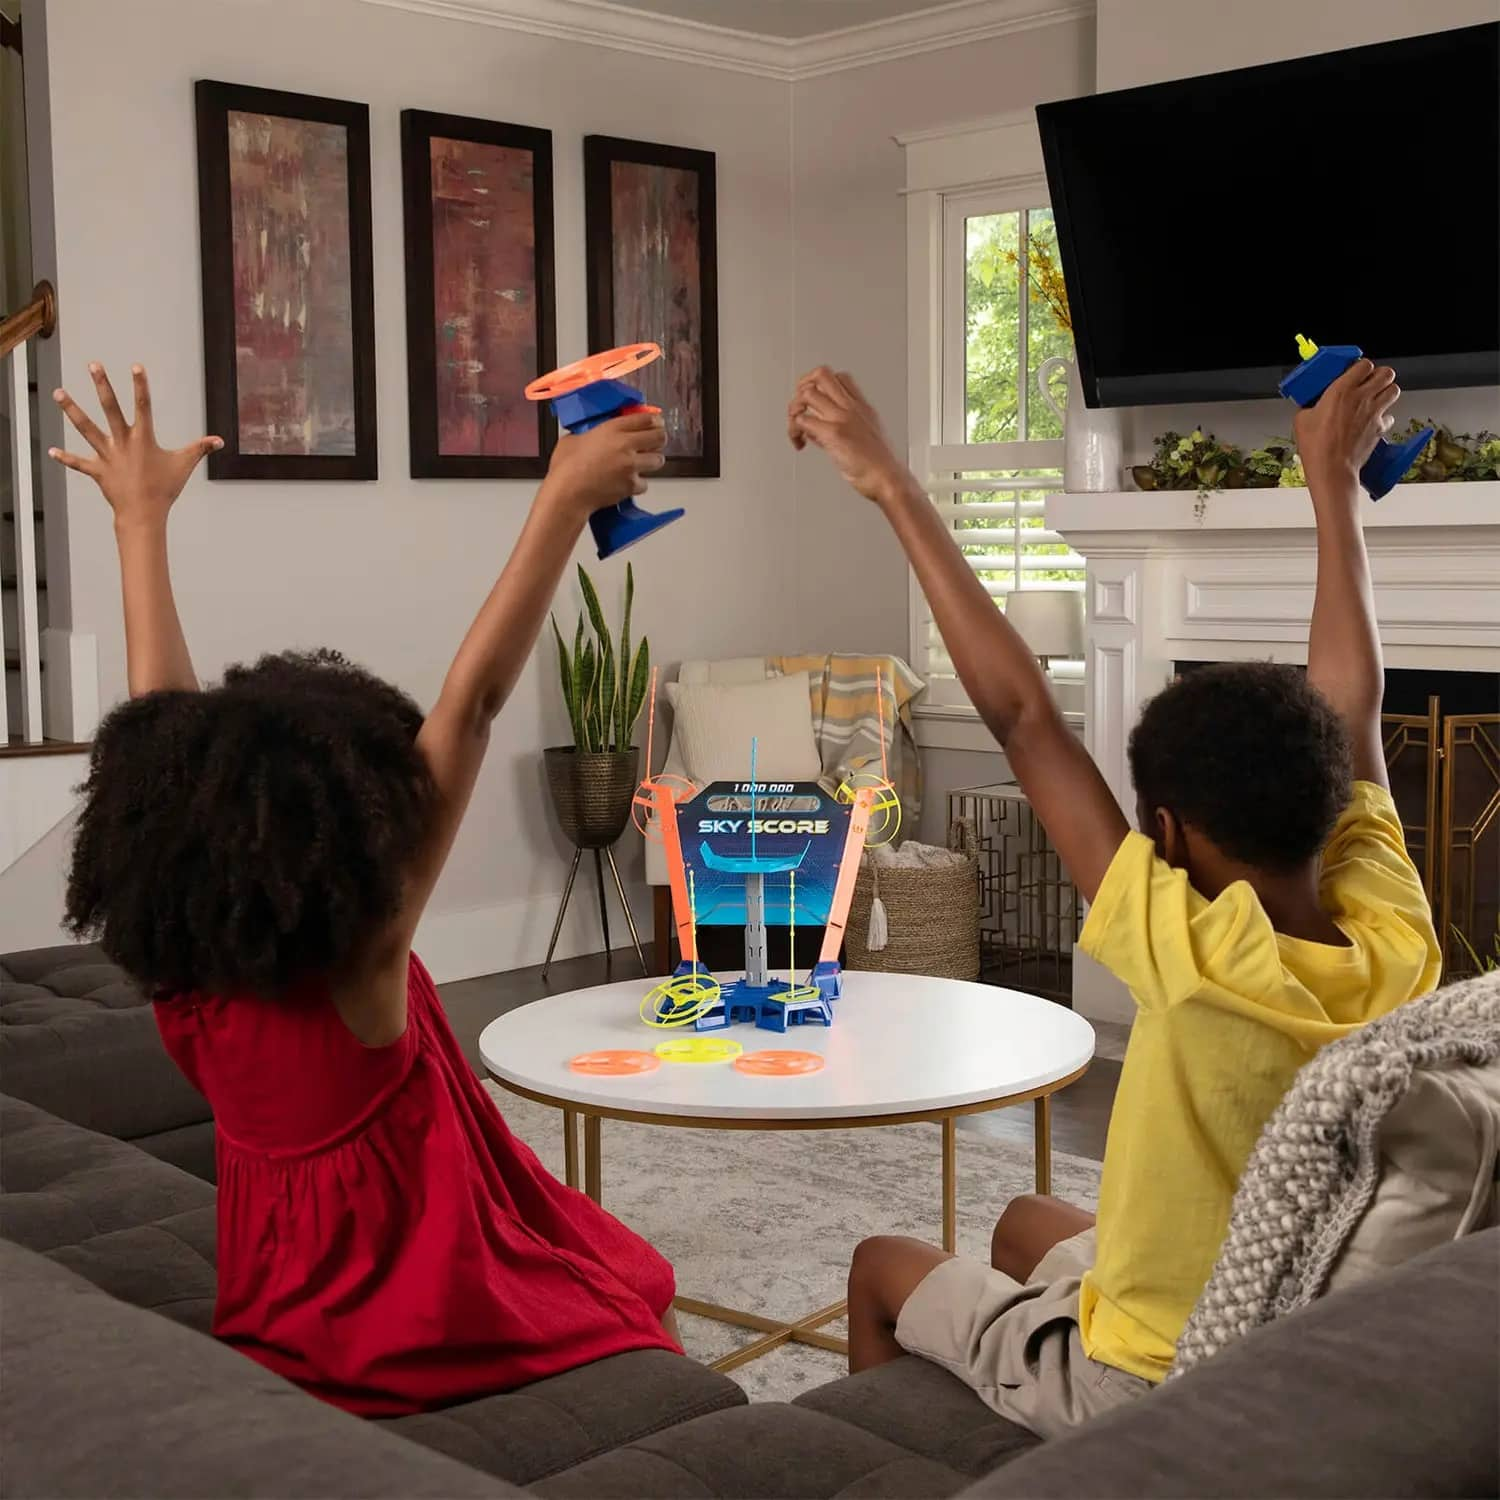 Sky Score Game Hasbro kids in lifestyle shot playing the game and celebrating